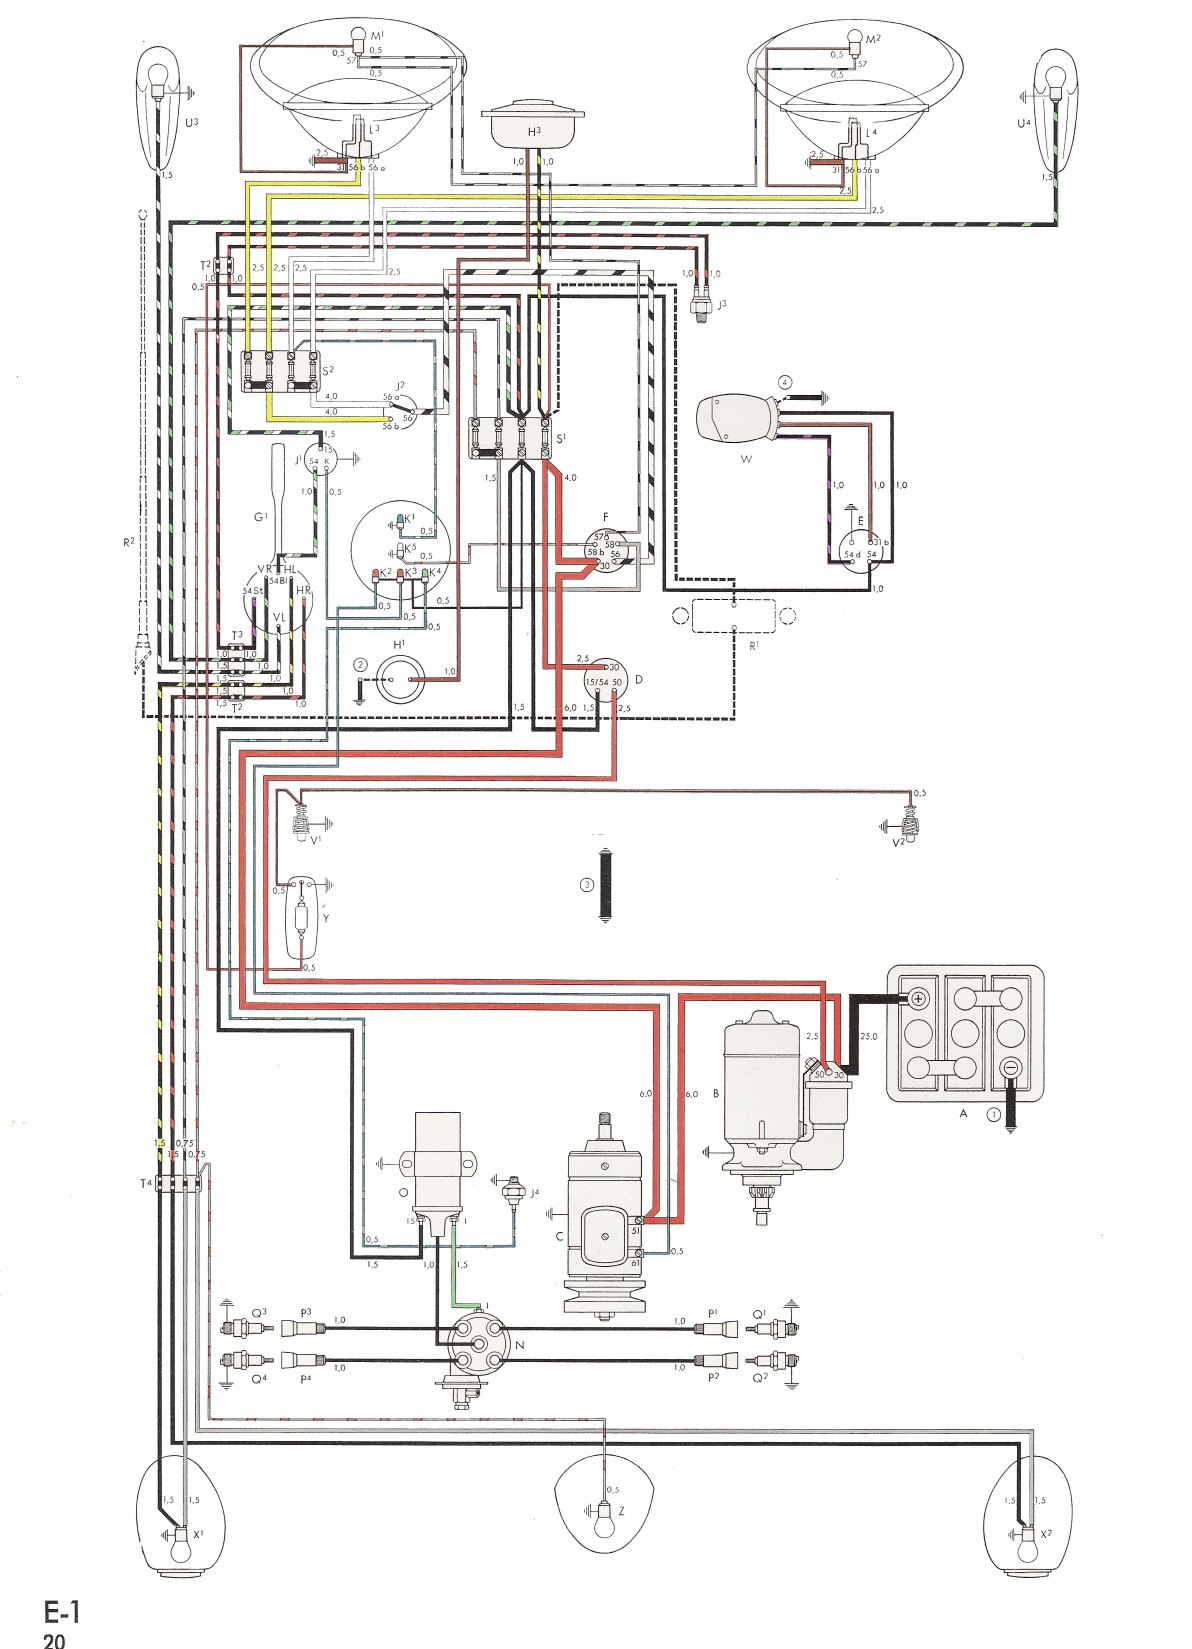 hight resolution of 1968 vw bug fuse diagram wiring diagram used1968 vw beetle wiring diagram wiring diagram for you